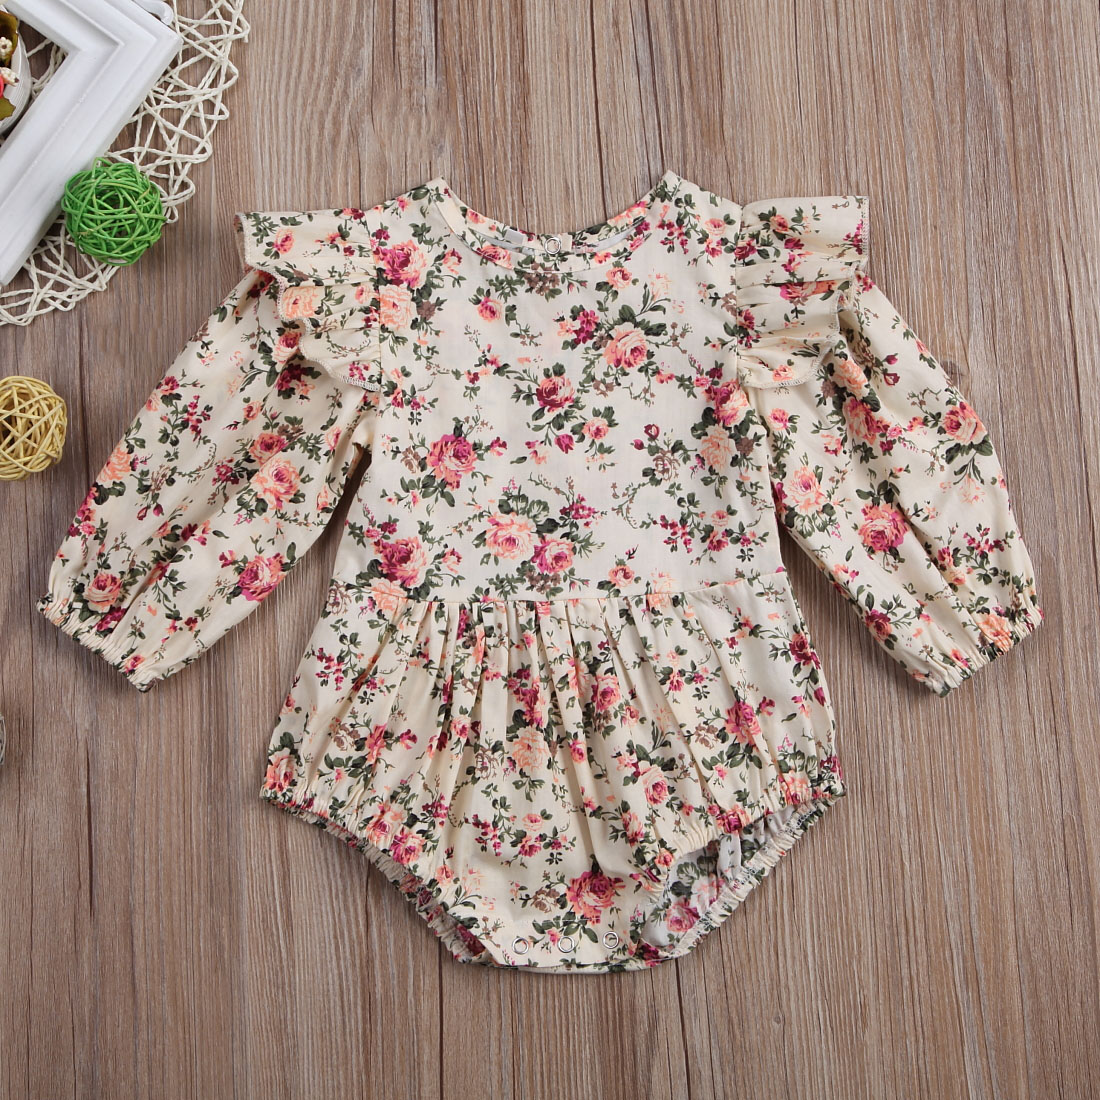 Newborn Toddler Baby Girls Ruffles Floral Romper Jumpsuit Outfits Clothes Newborn Toddler Baby Girls Ruffles Floral Romper Jumpsuit Outfits Clothes